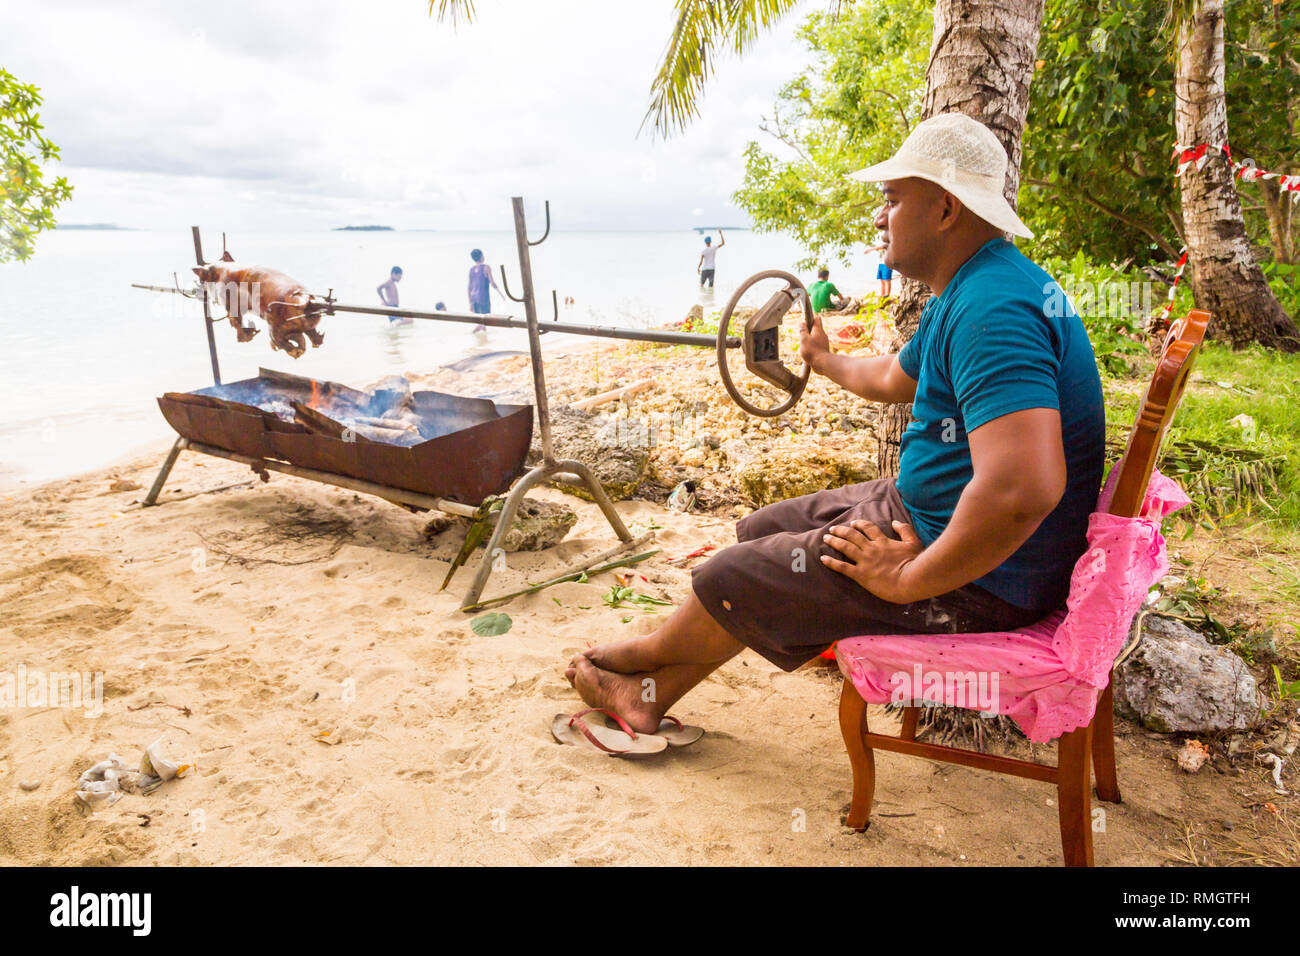 Tongatapu, Tonga - Jan 10 2014: a local native indigenous Polynesian man does a pork barbecue of a small piglet on an open fire of a home-made grill m - Stock Image